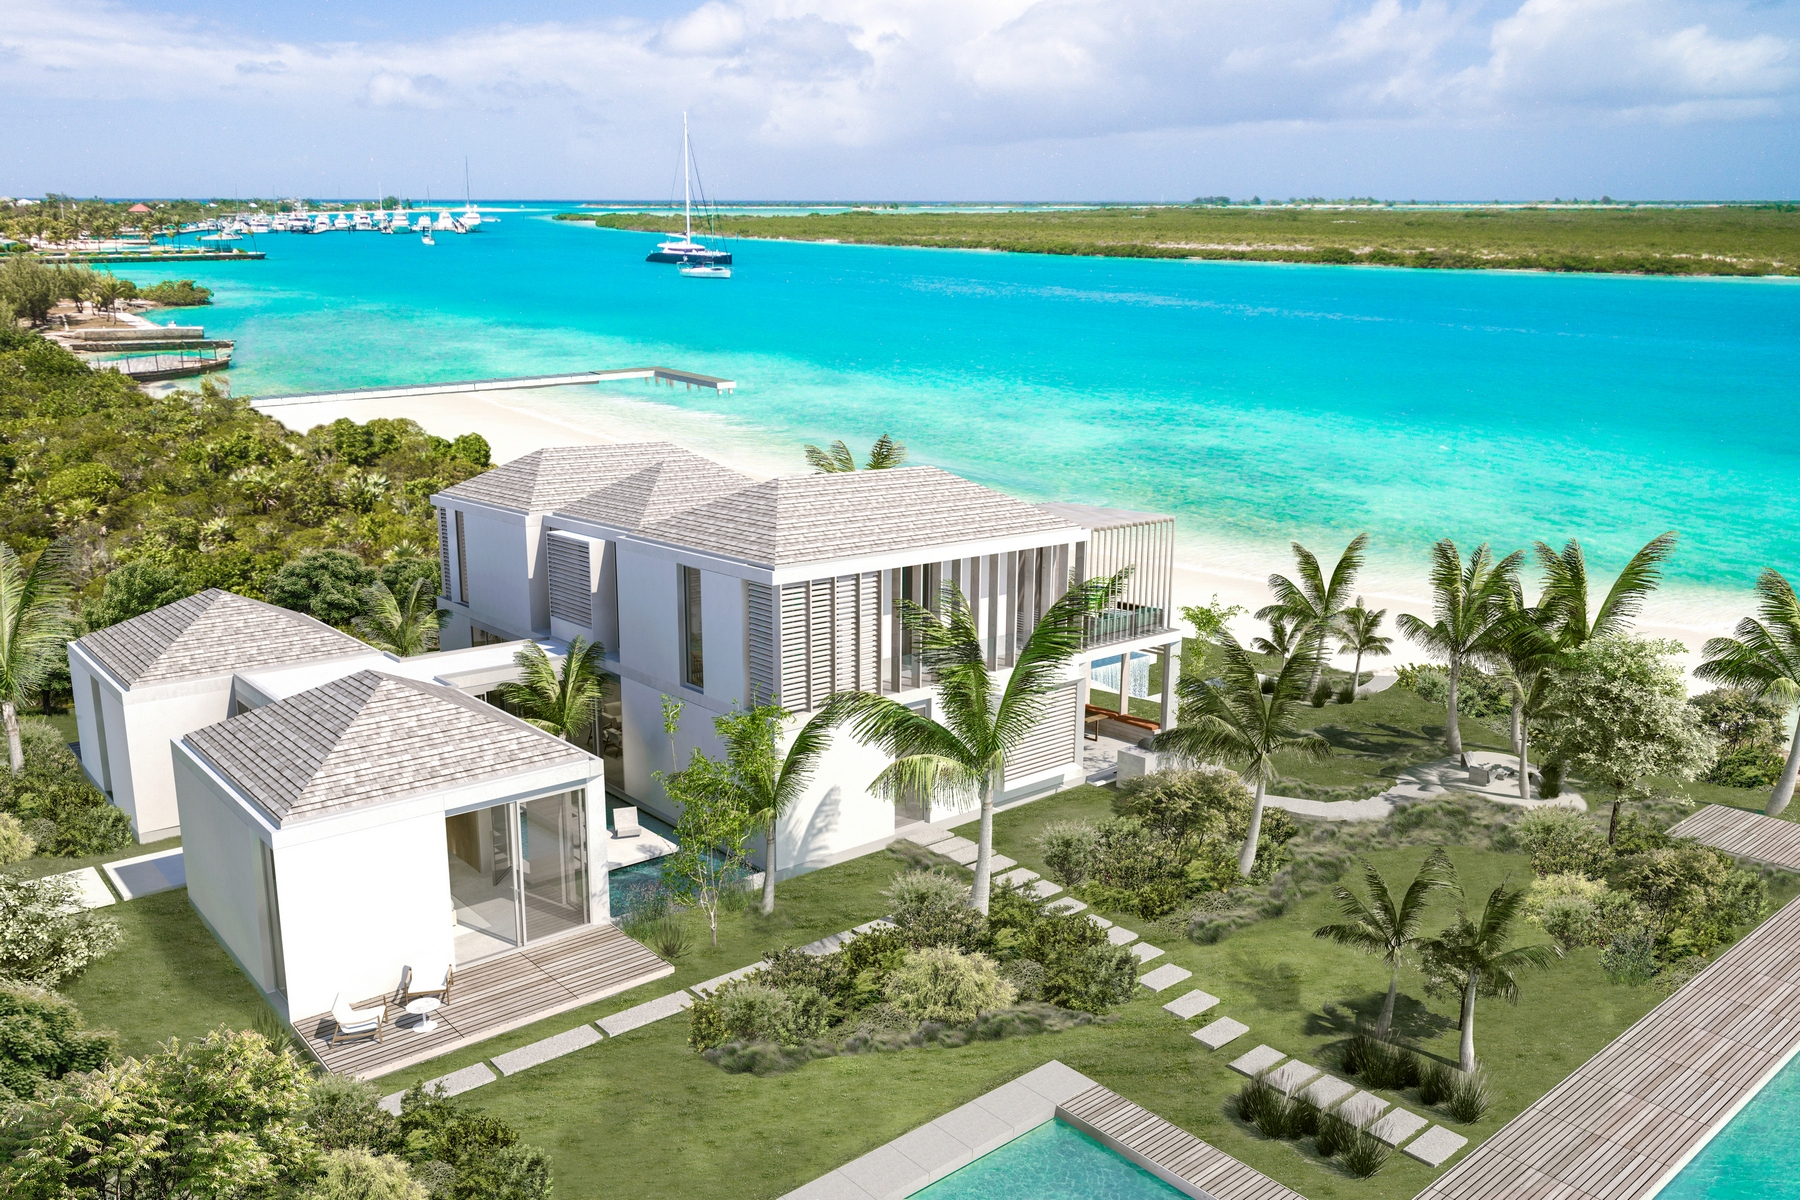 Tek Ailelik Ev için Satış at Pavilion House - Beachfront Lot 1 Leeward, Providenciales, Turks Ve Caicos Adalari